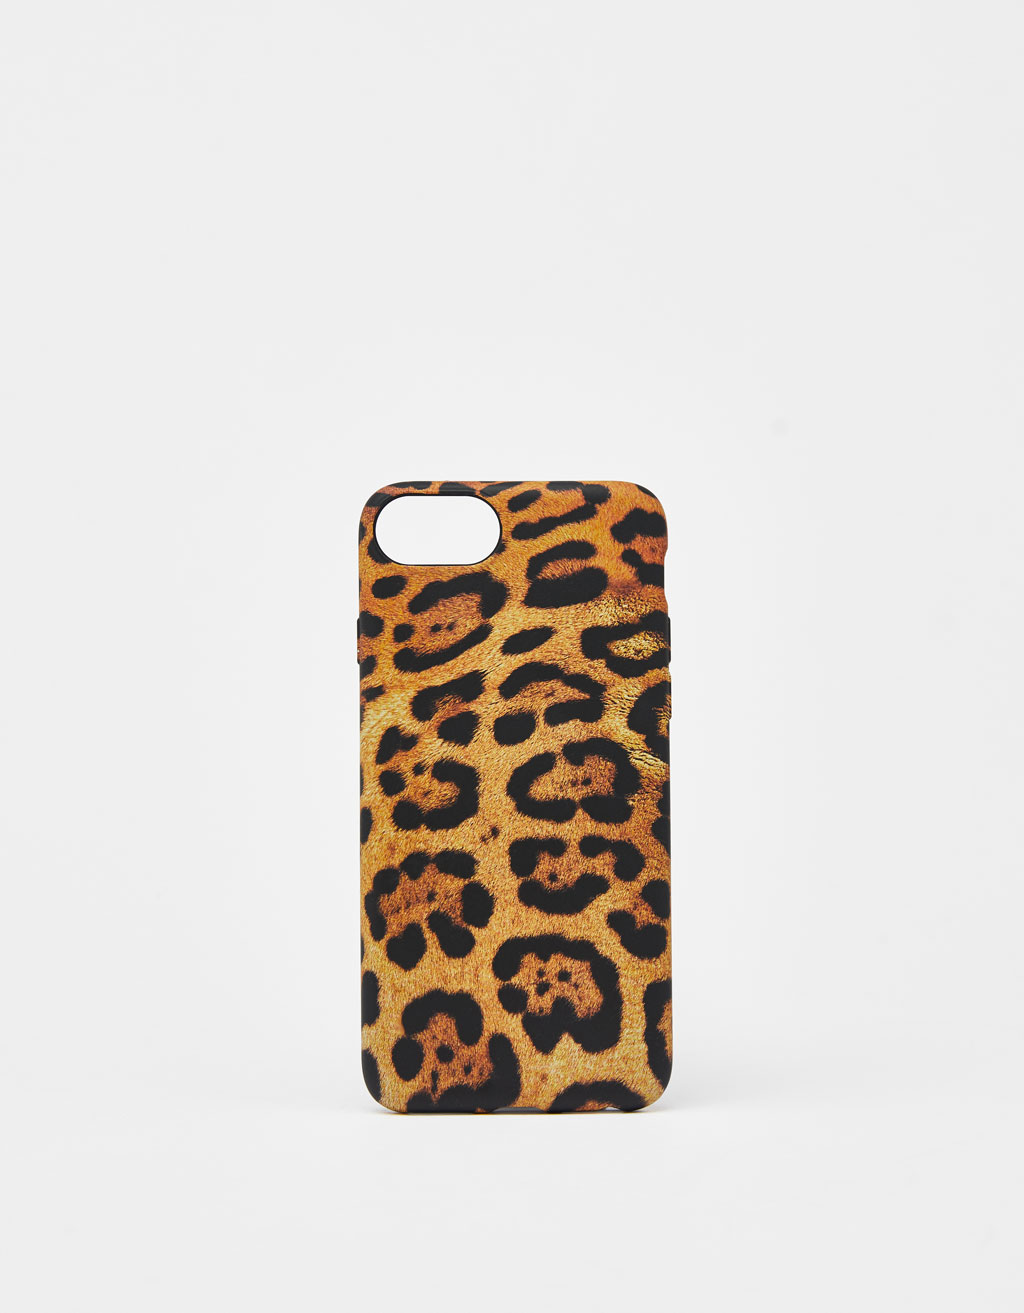 Leopard iPhone 6/6s/7/8 case